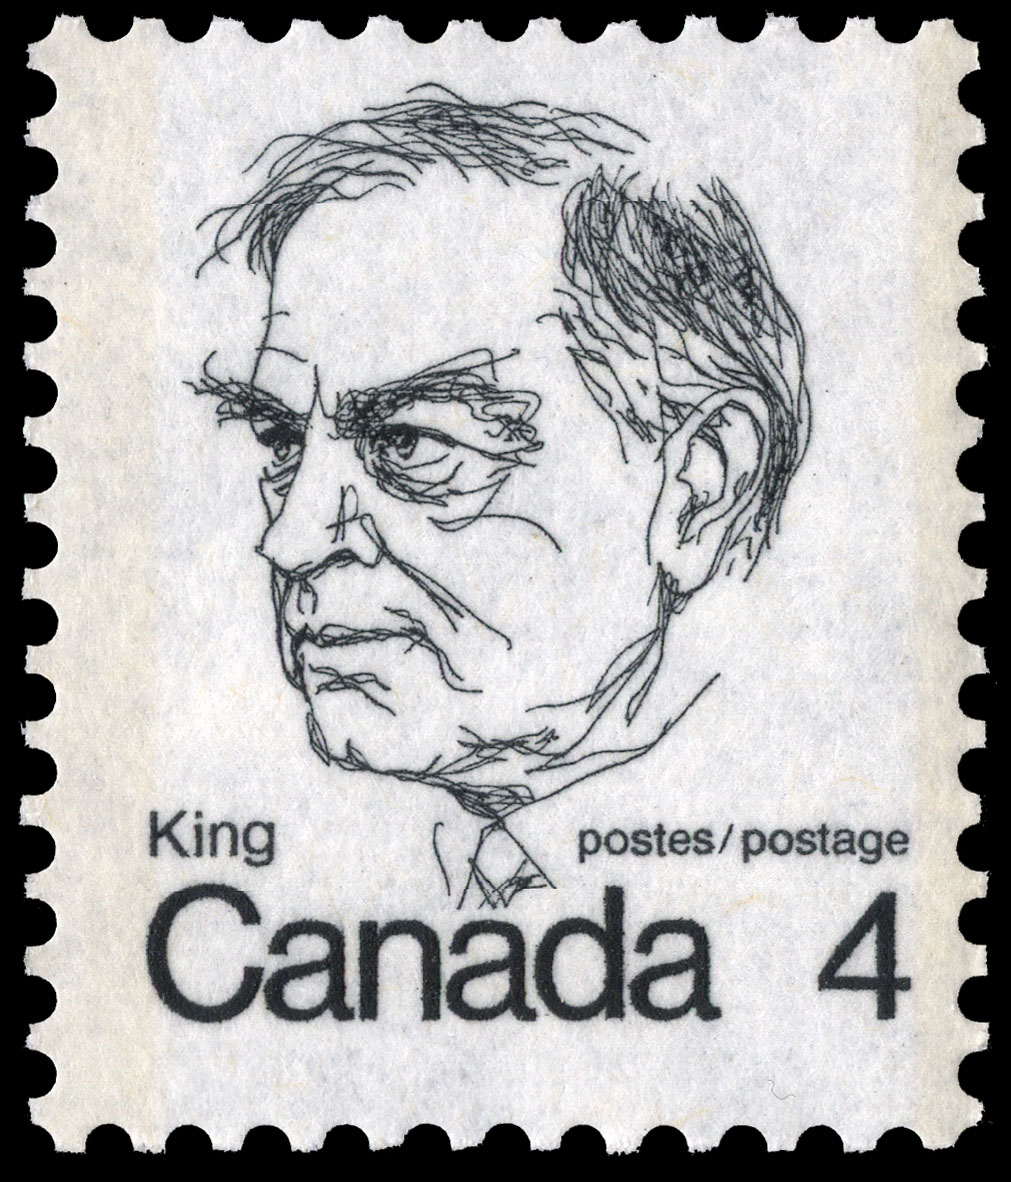 King Canada Postage Stamp